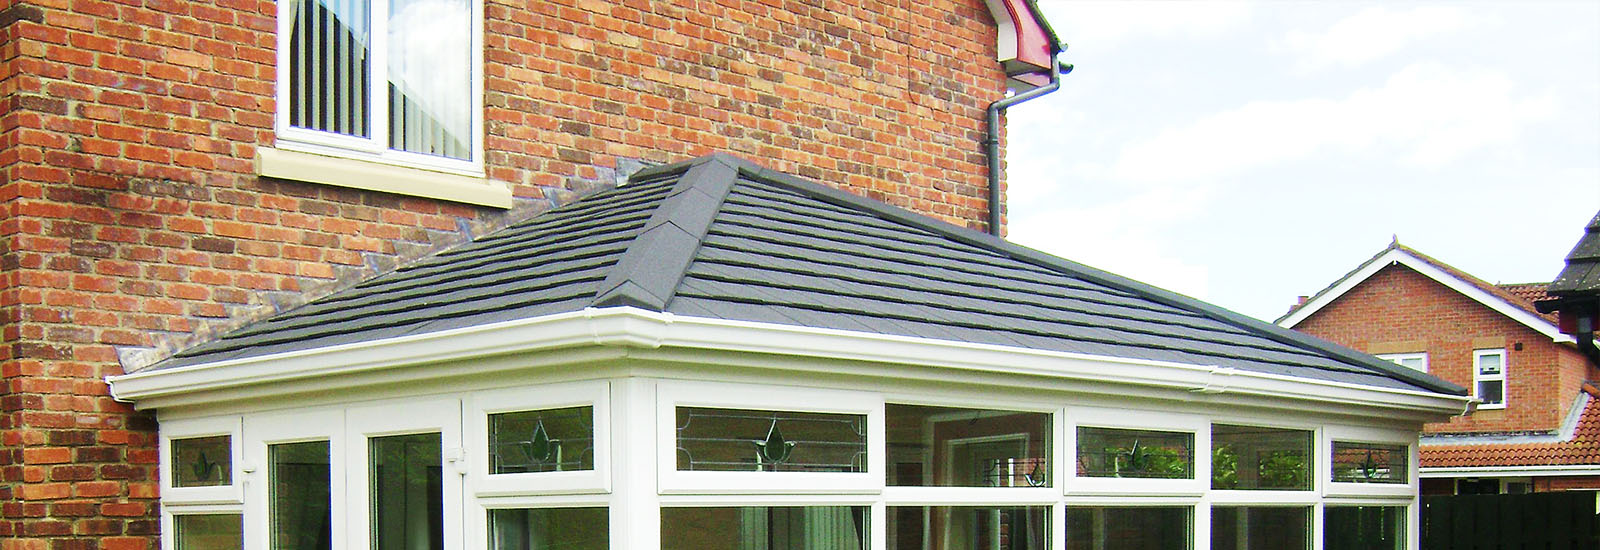 Solid Roof Selby York Harrogate